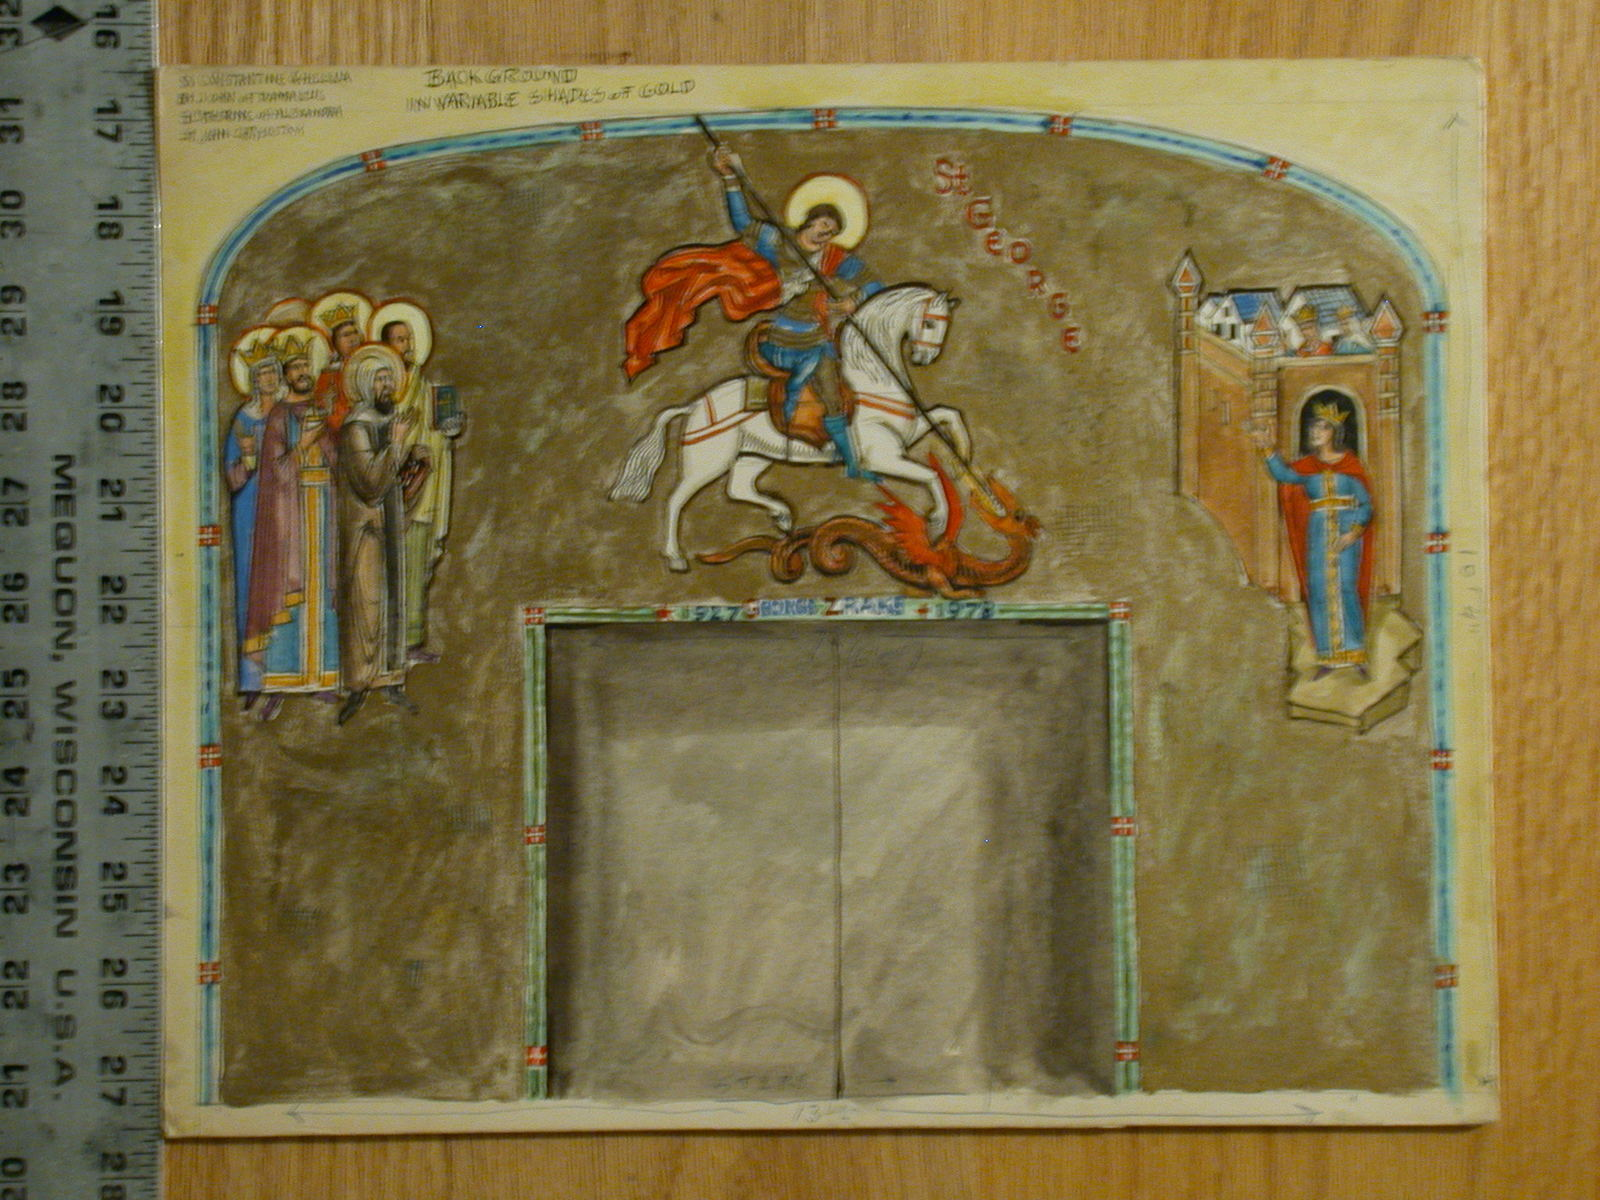 "[Design drawing for a mural showing St. George in a Byzantine-style depiction of saints with royalty cheering him on as he slays the dragon for a memorial window with door surround with ""1927 George Zrake 1978"" over double doors, for St. Mary's Orthodox Church in Bay Ridge, Brooklyn, New York]"